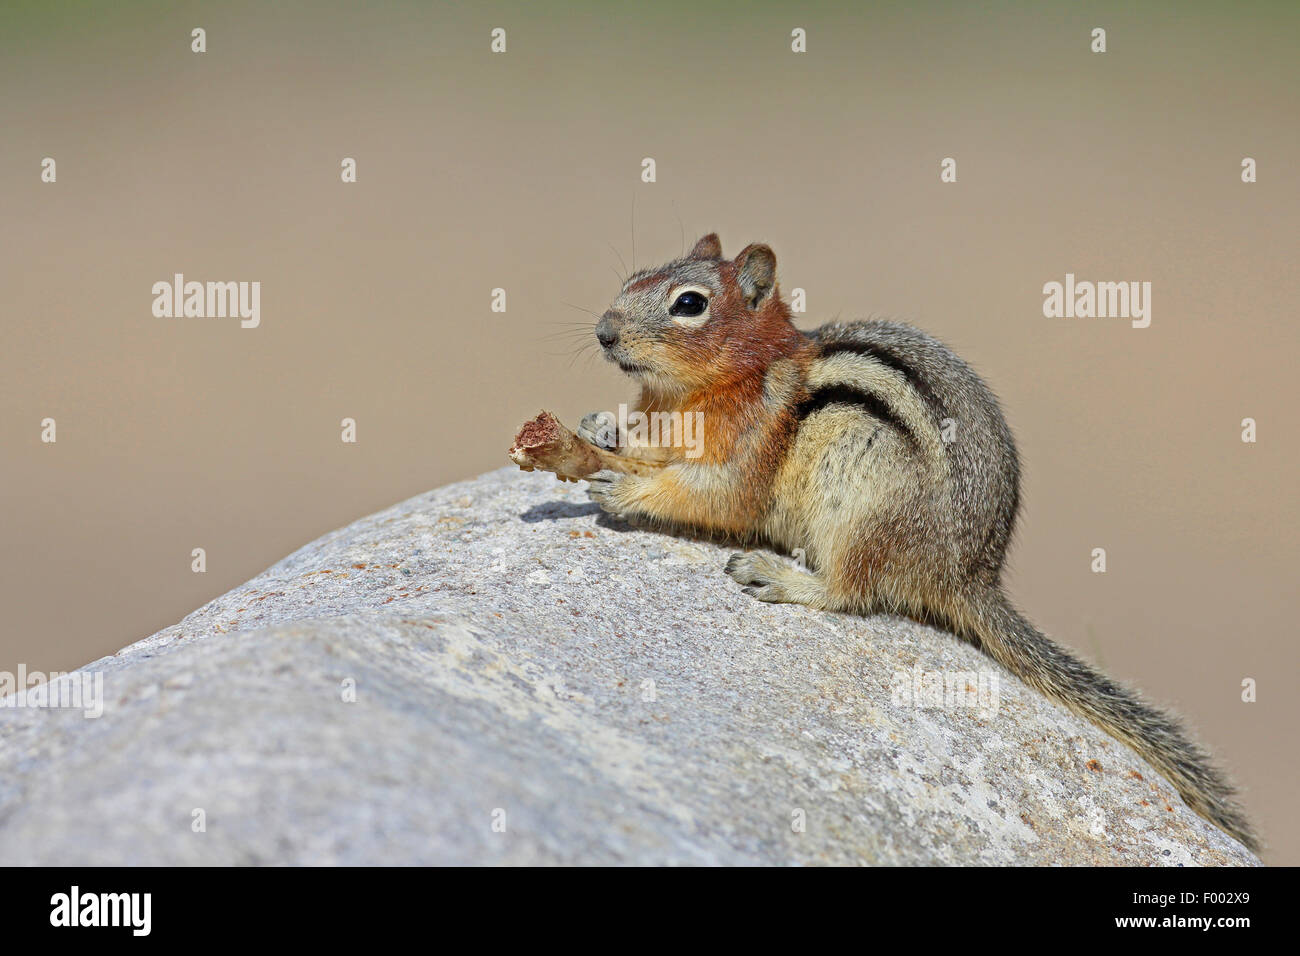 golden-mantled ground squirrel (Spermophilus lateralis, Citellus lateralis, Callospermophilus lateralis), sits on - Stock Image